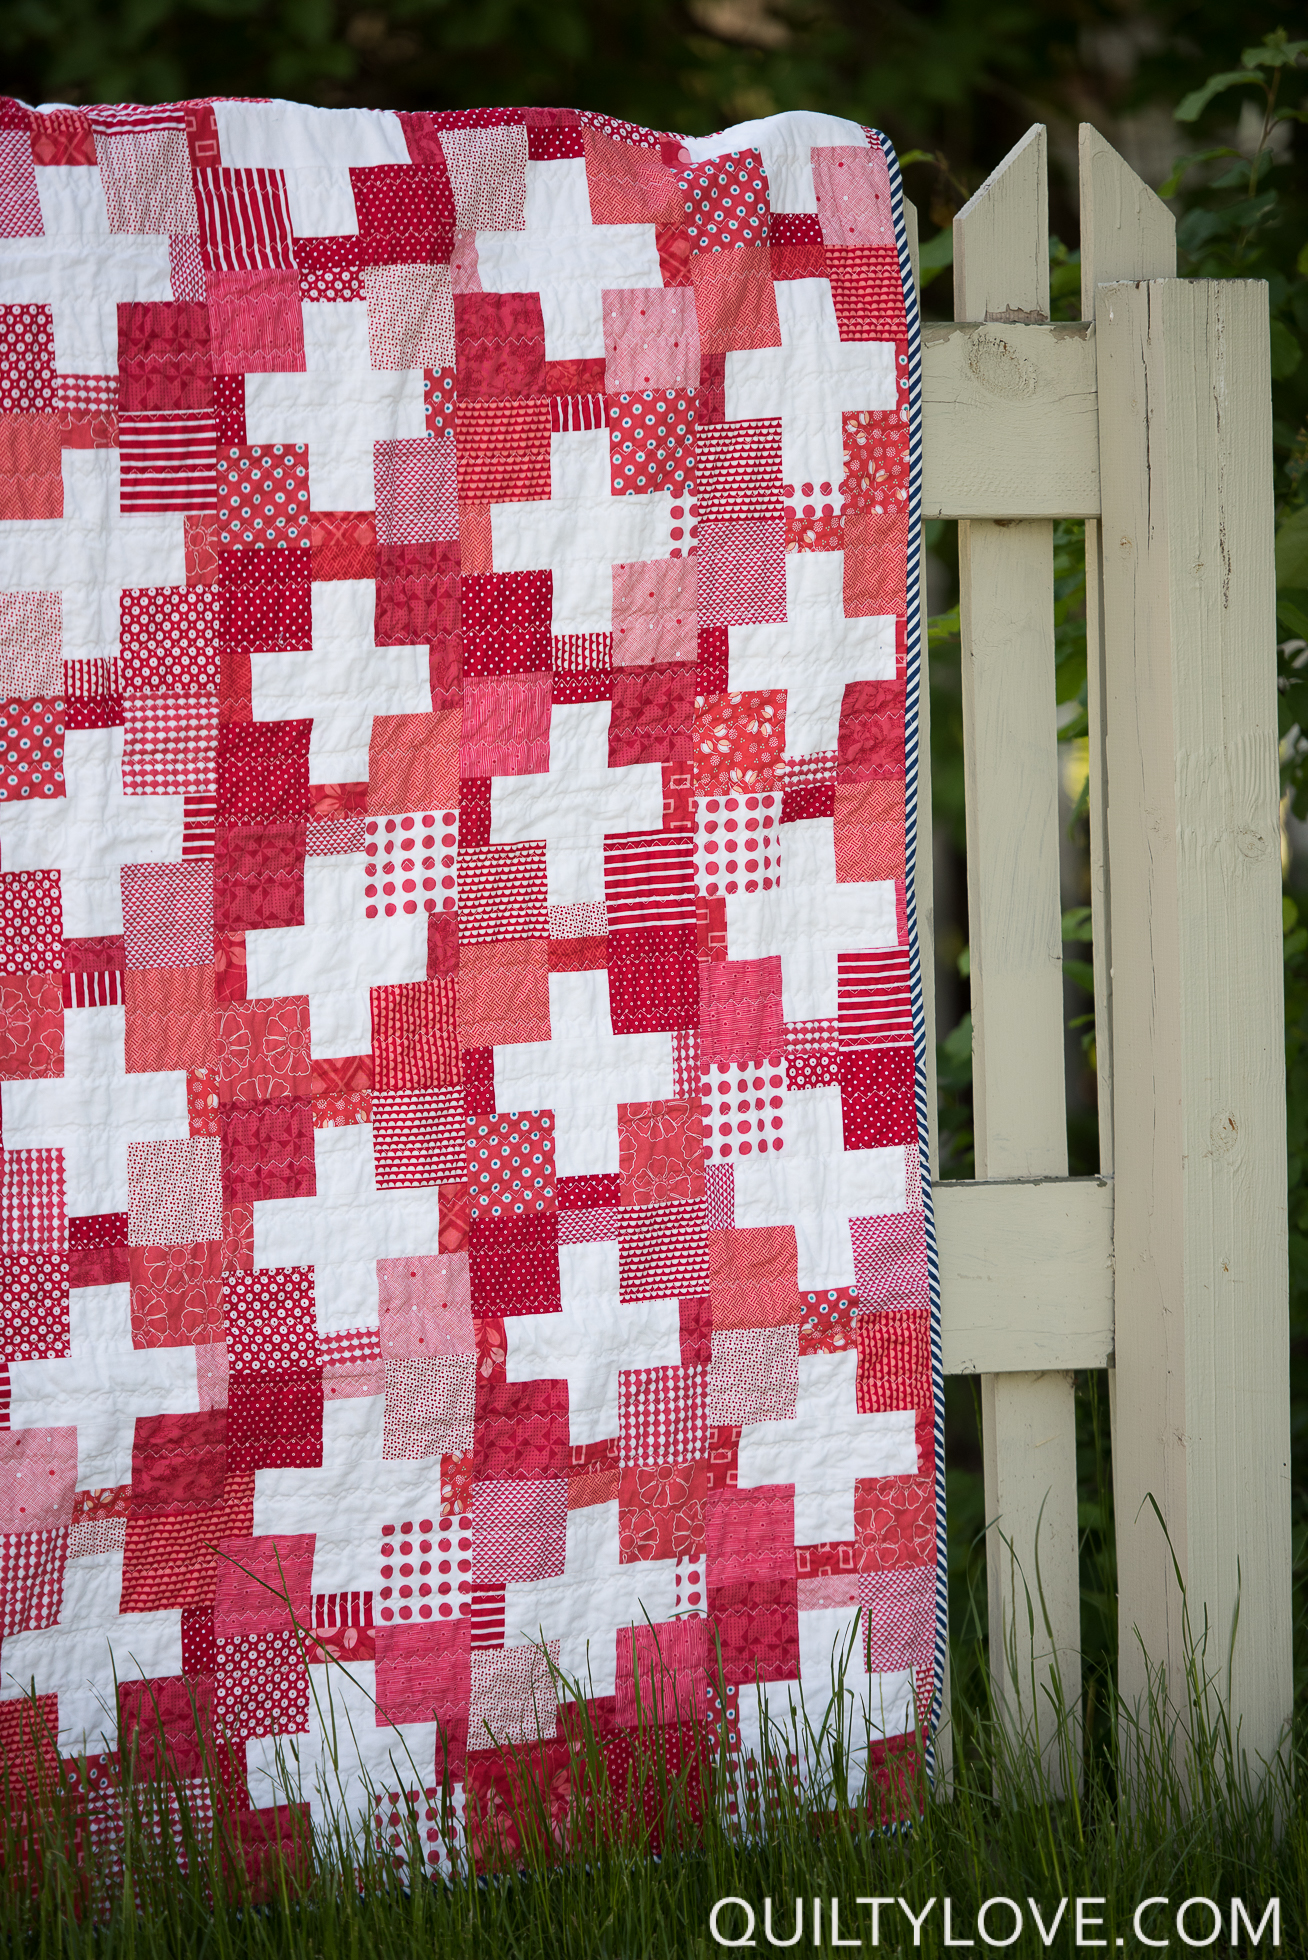 Blog Quilty Love